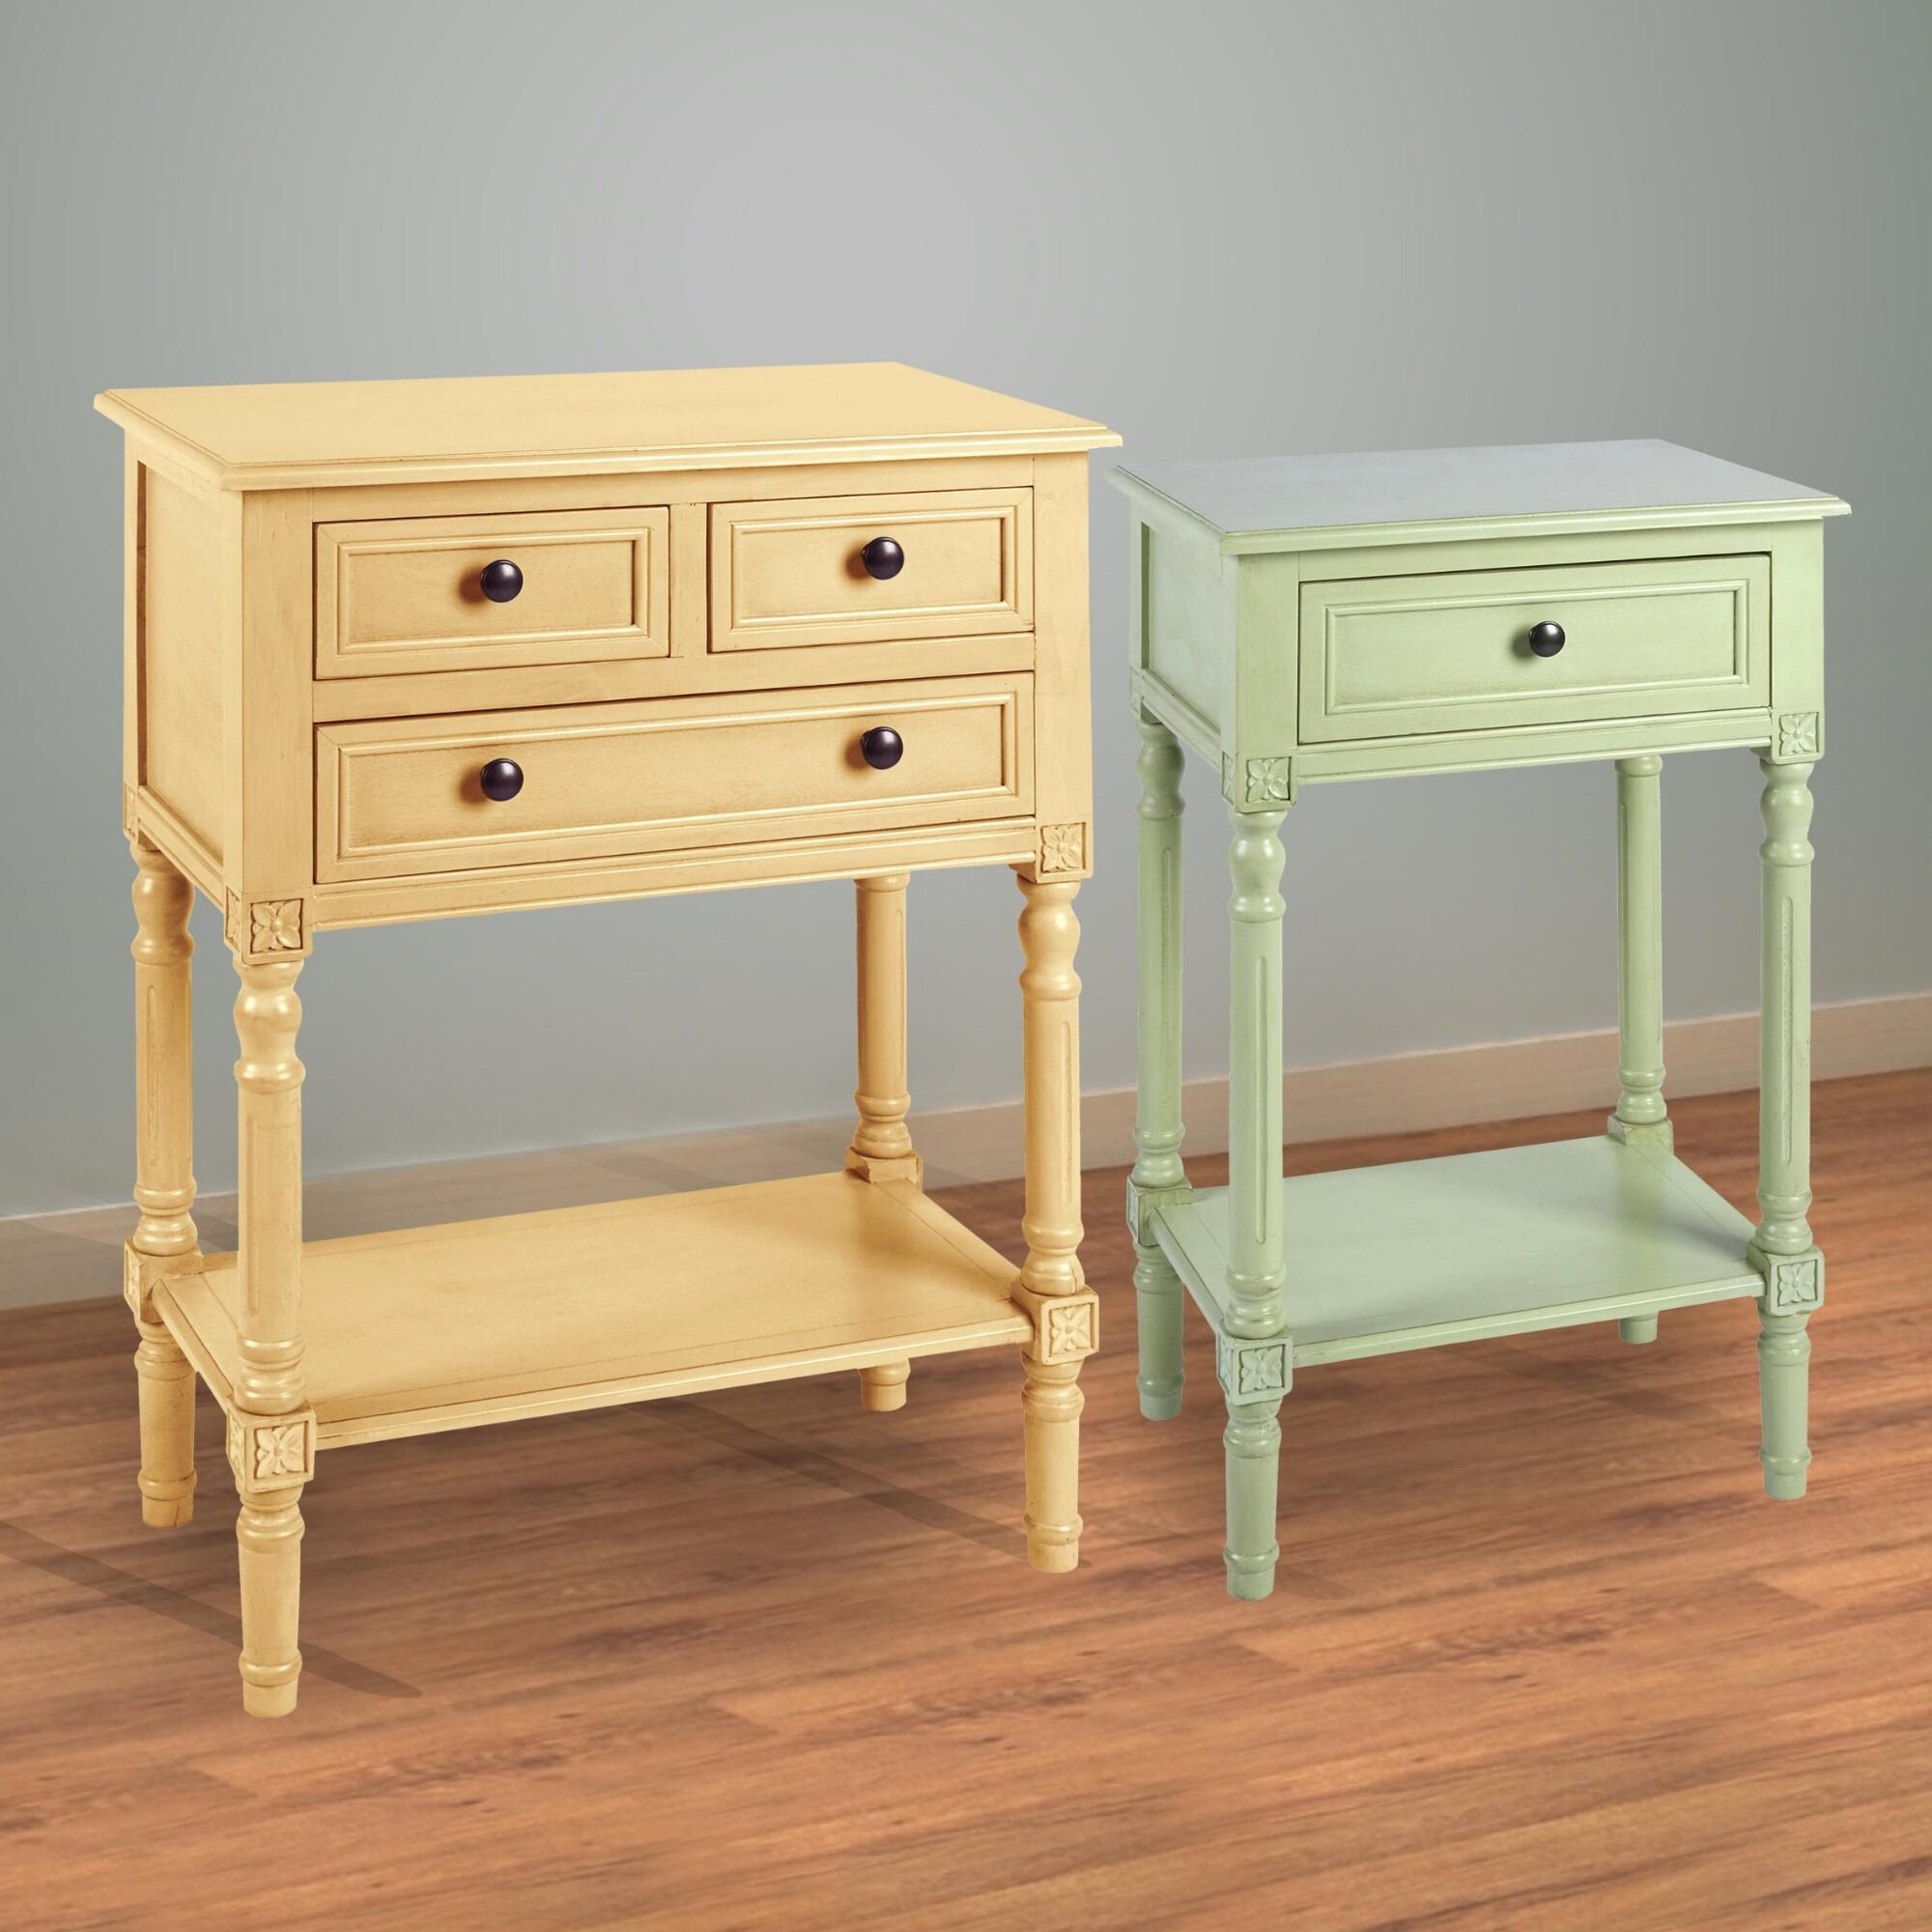 Antique French Accent Tables Discount Home Decor Home Decor Affordable Furniture